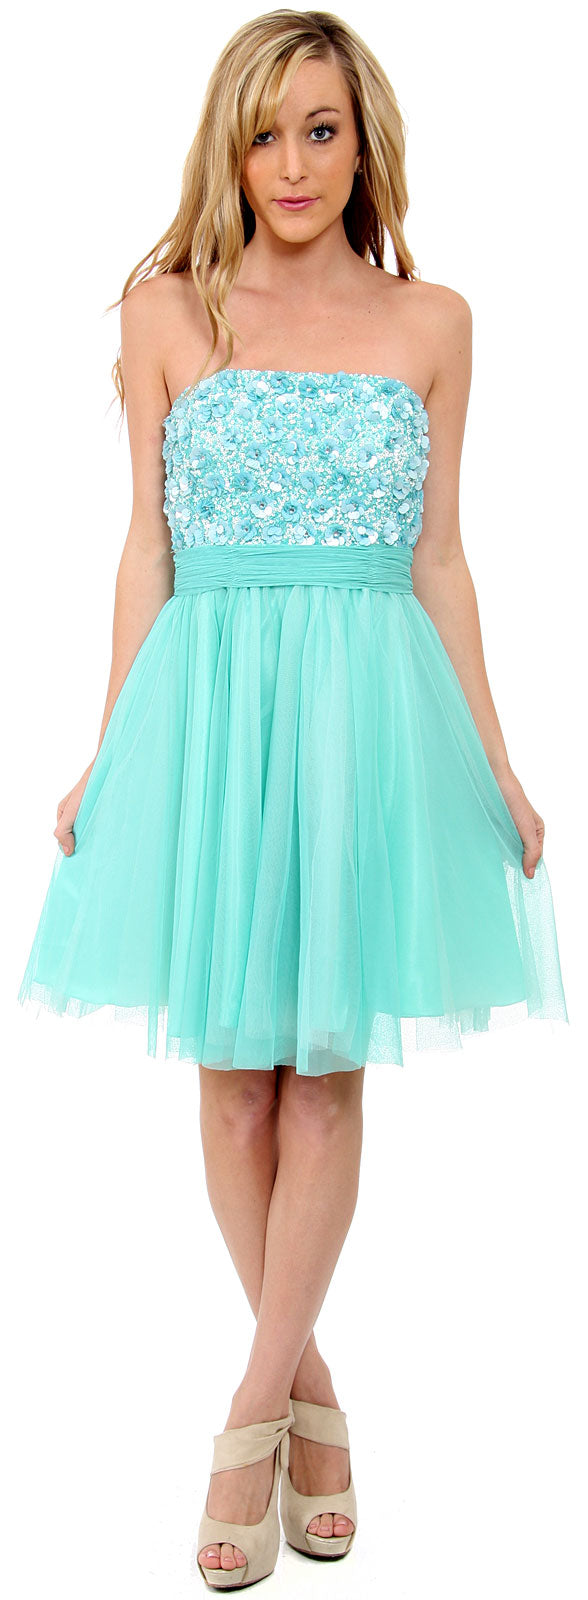 Image of Strapless Flowered Sequined Short Dress in Aqua/Multi